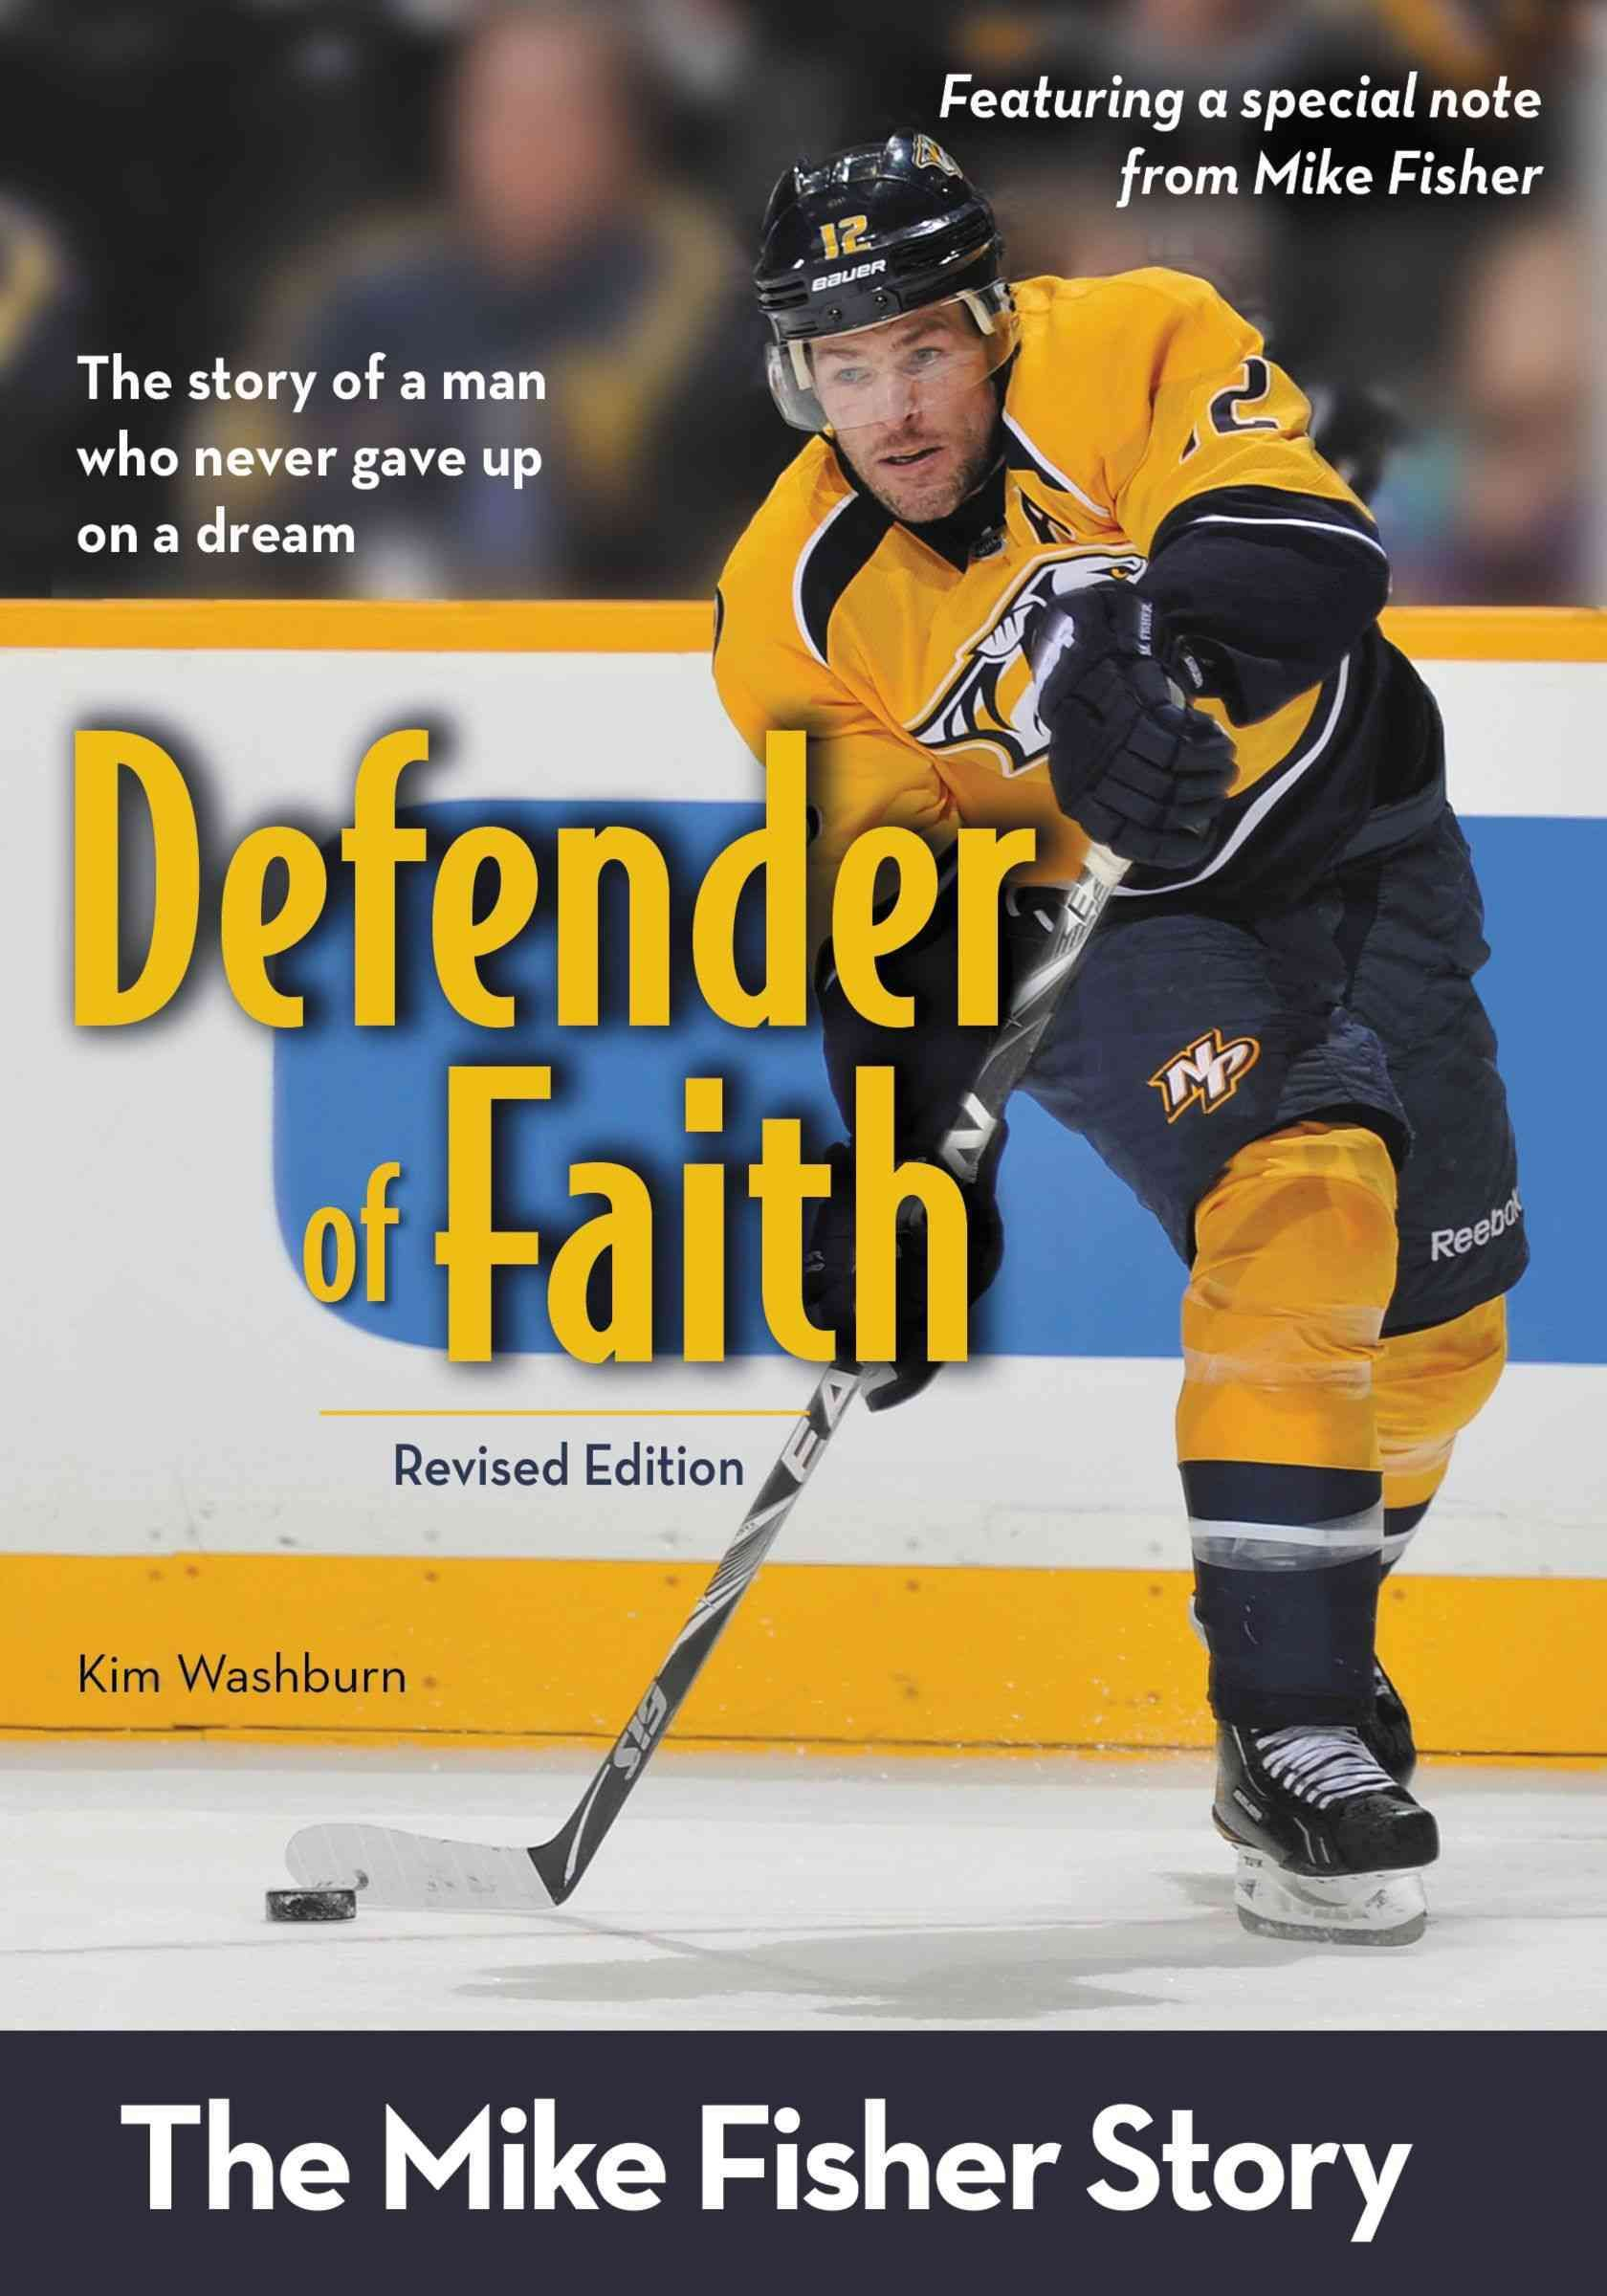 the revised edition of defender of faith describes the